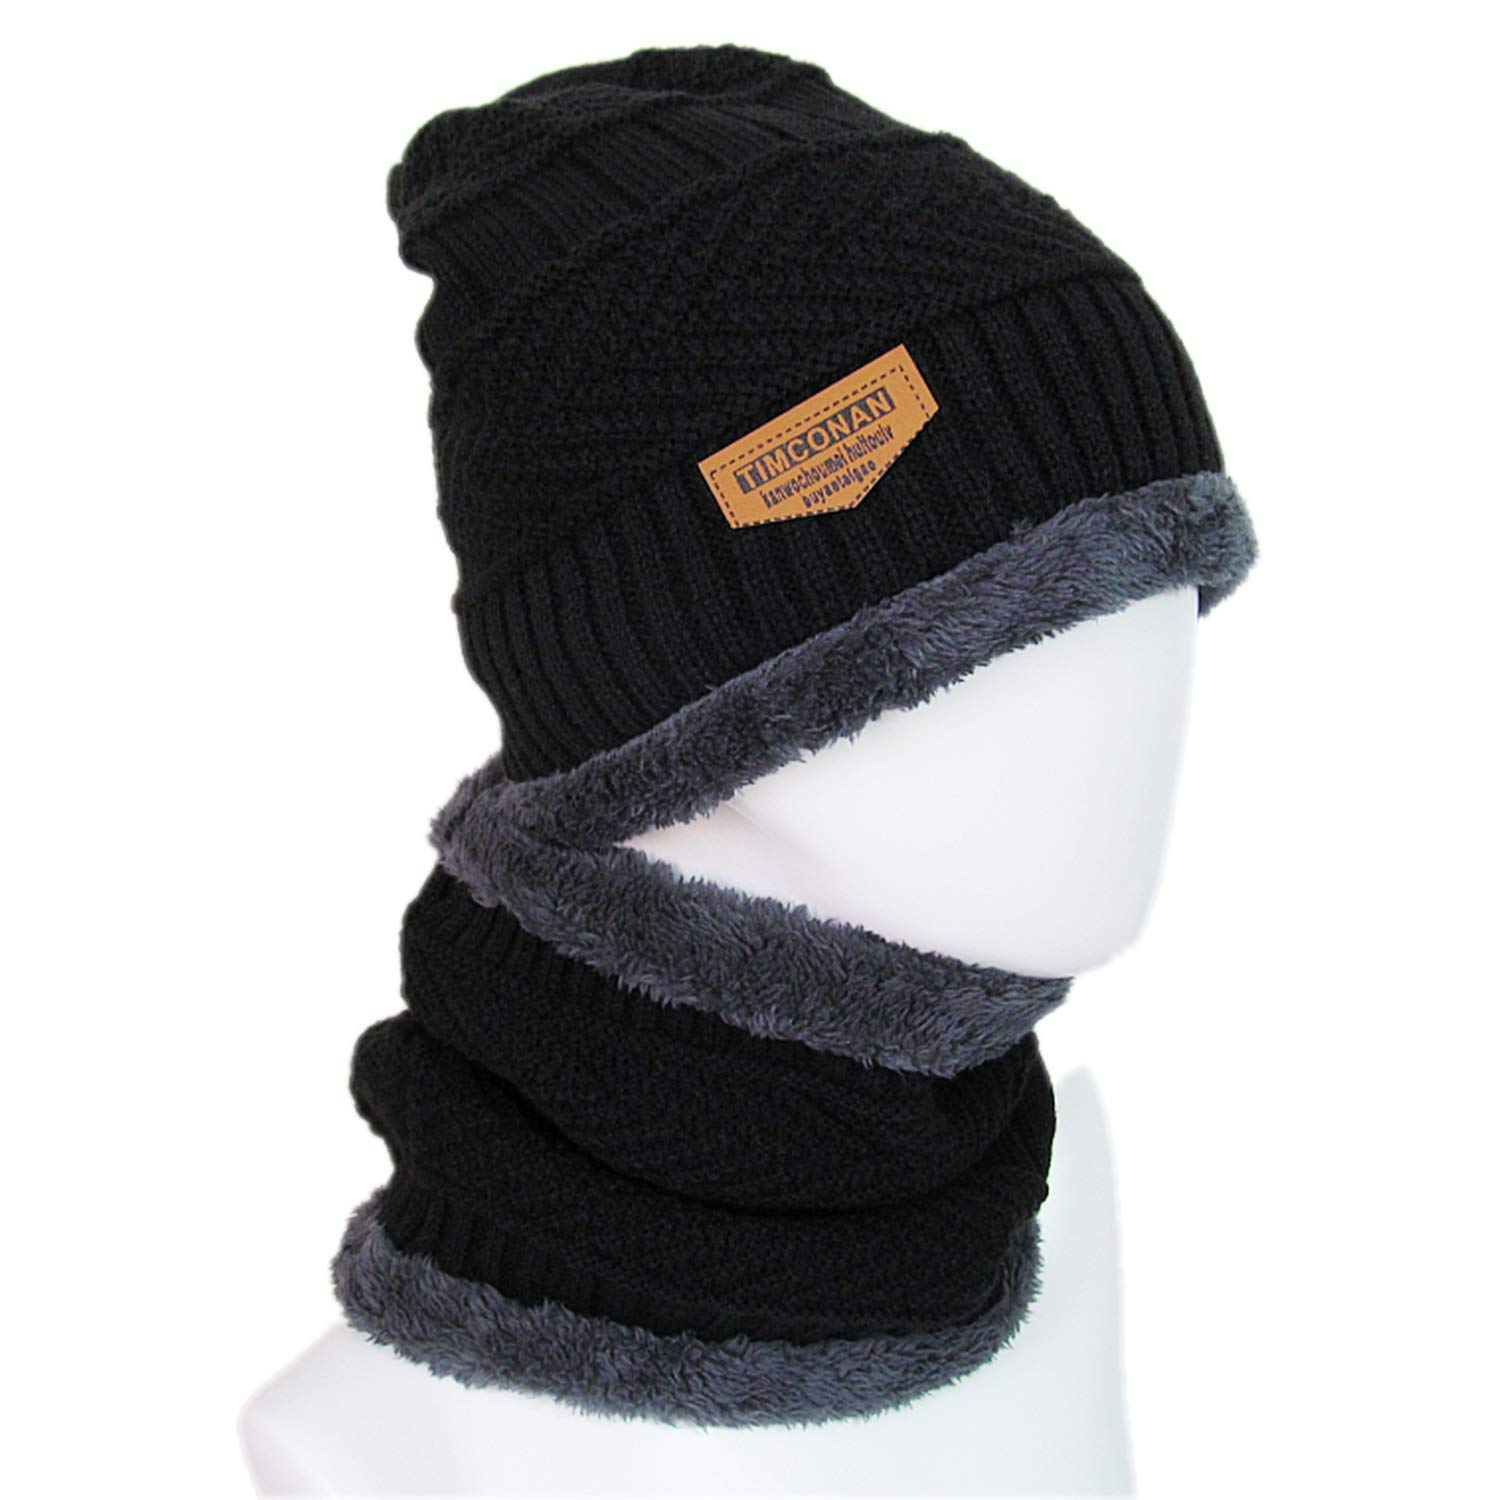 MOACC Winter Beanie Hat and Warm Scarf Set Thick Knit Skull Cap Warm Snow Ski Skull CapFleece Lined Scarf Outdoors Hat Unisex Use for Skiing Snowboarding Motorcycling Snow Climing (Black)